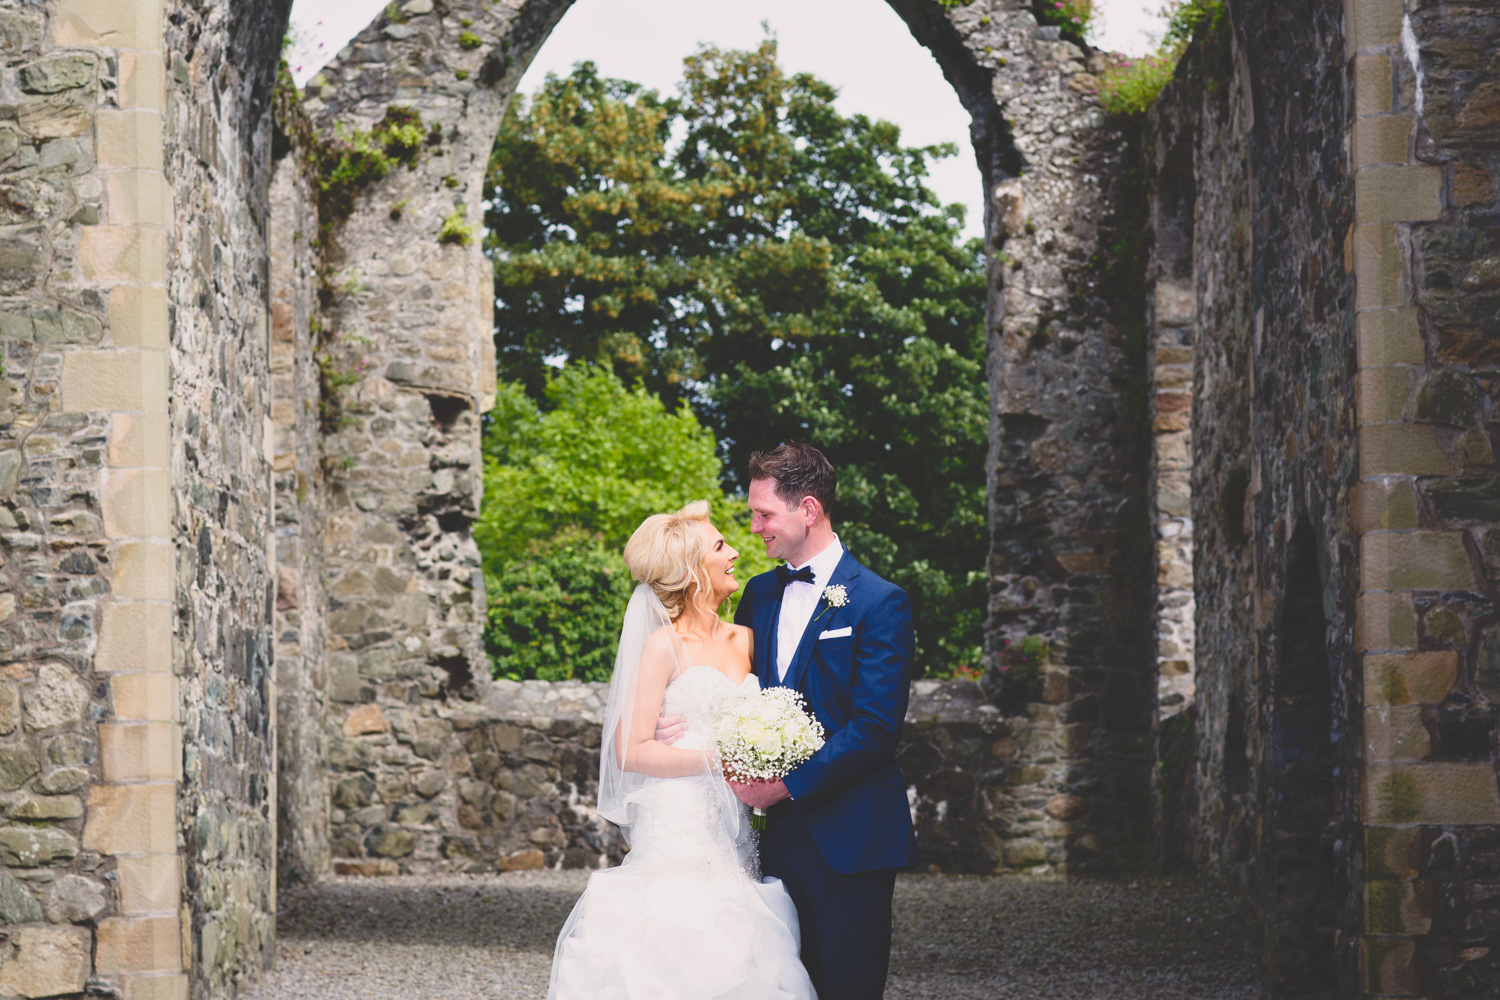 Mark_Barnes_wedding_photographer_Northern_Ireland_Wedding_photography_Carlingford_Four_Seasons_Wedding-33.jpg